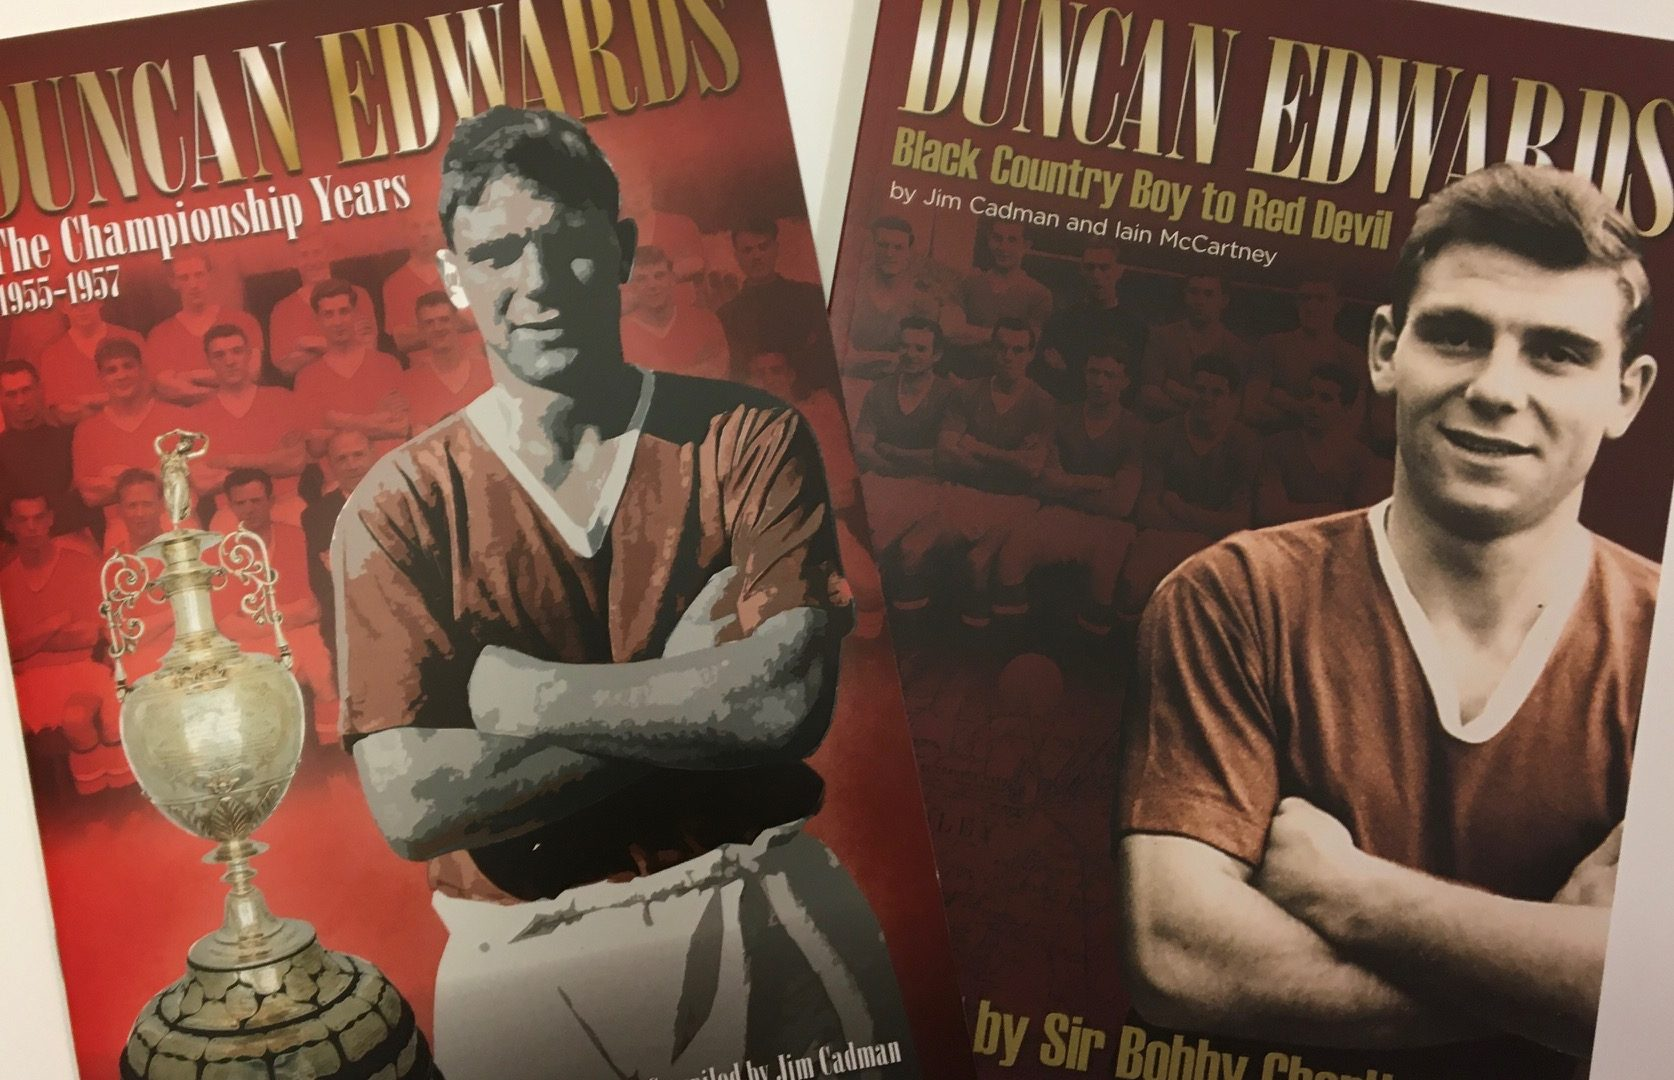 DUNCAN EDWARDS CHAMPIONSHIP YEARS BOOK NOW AVAILABLE